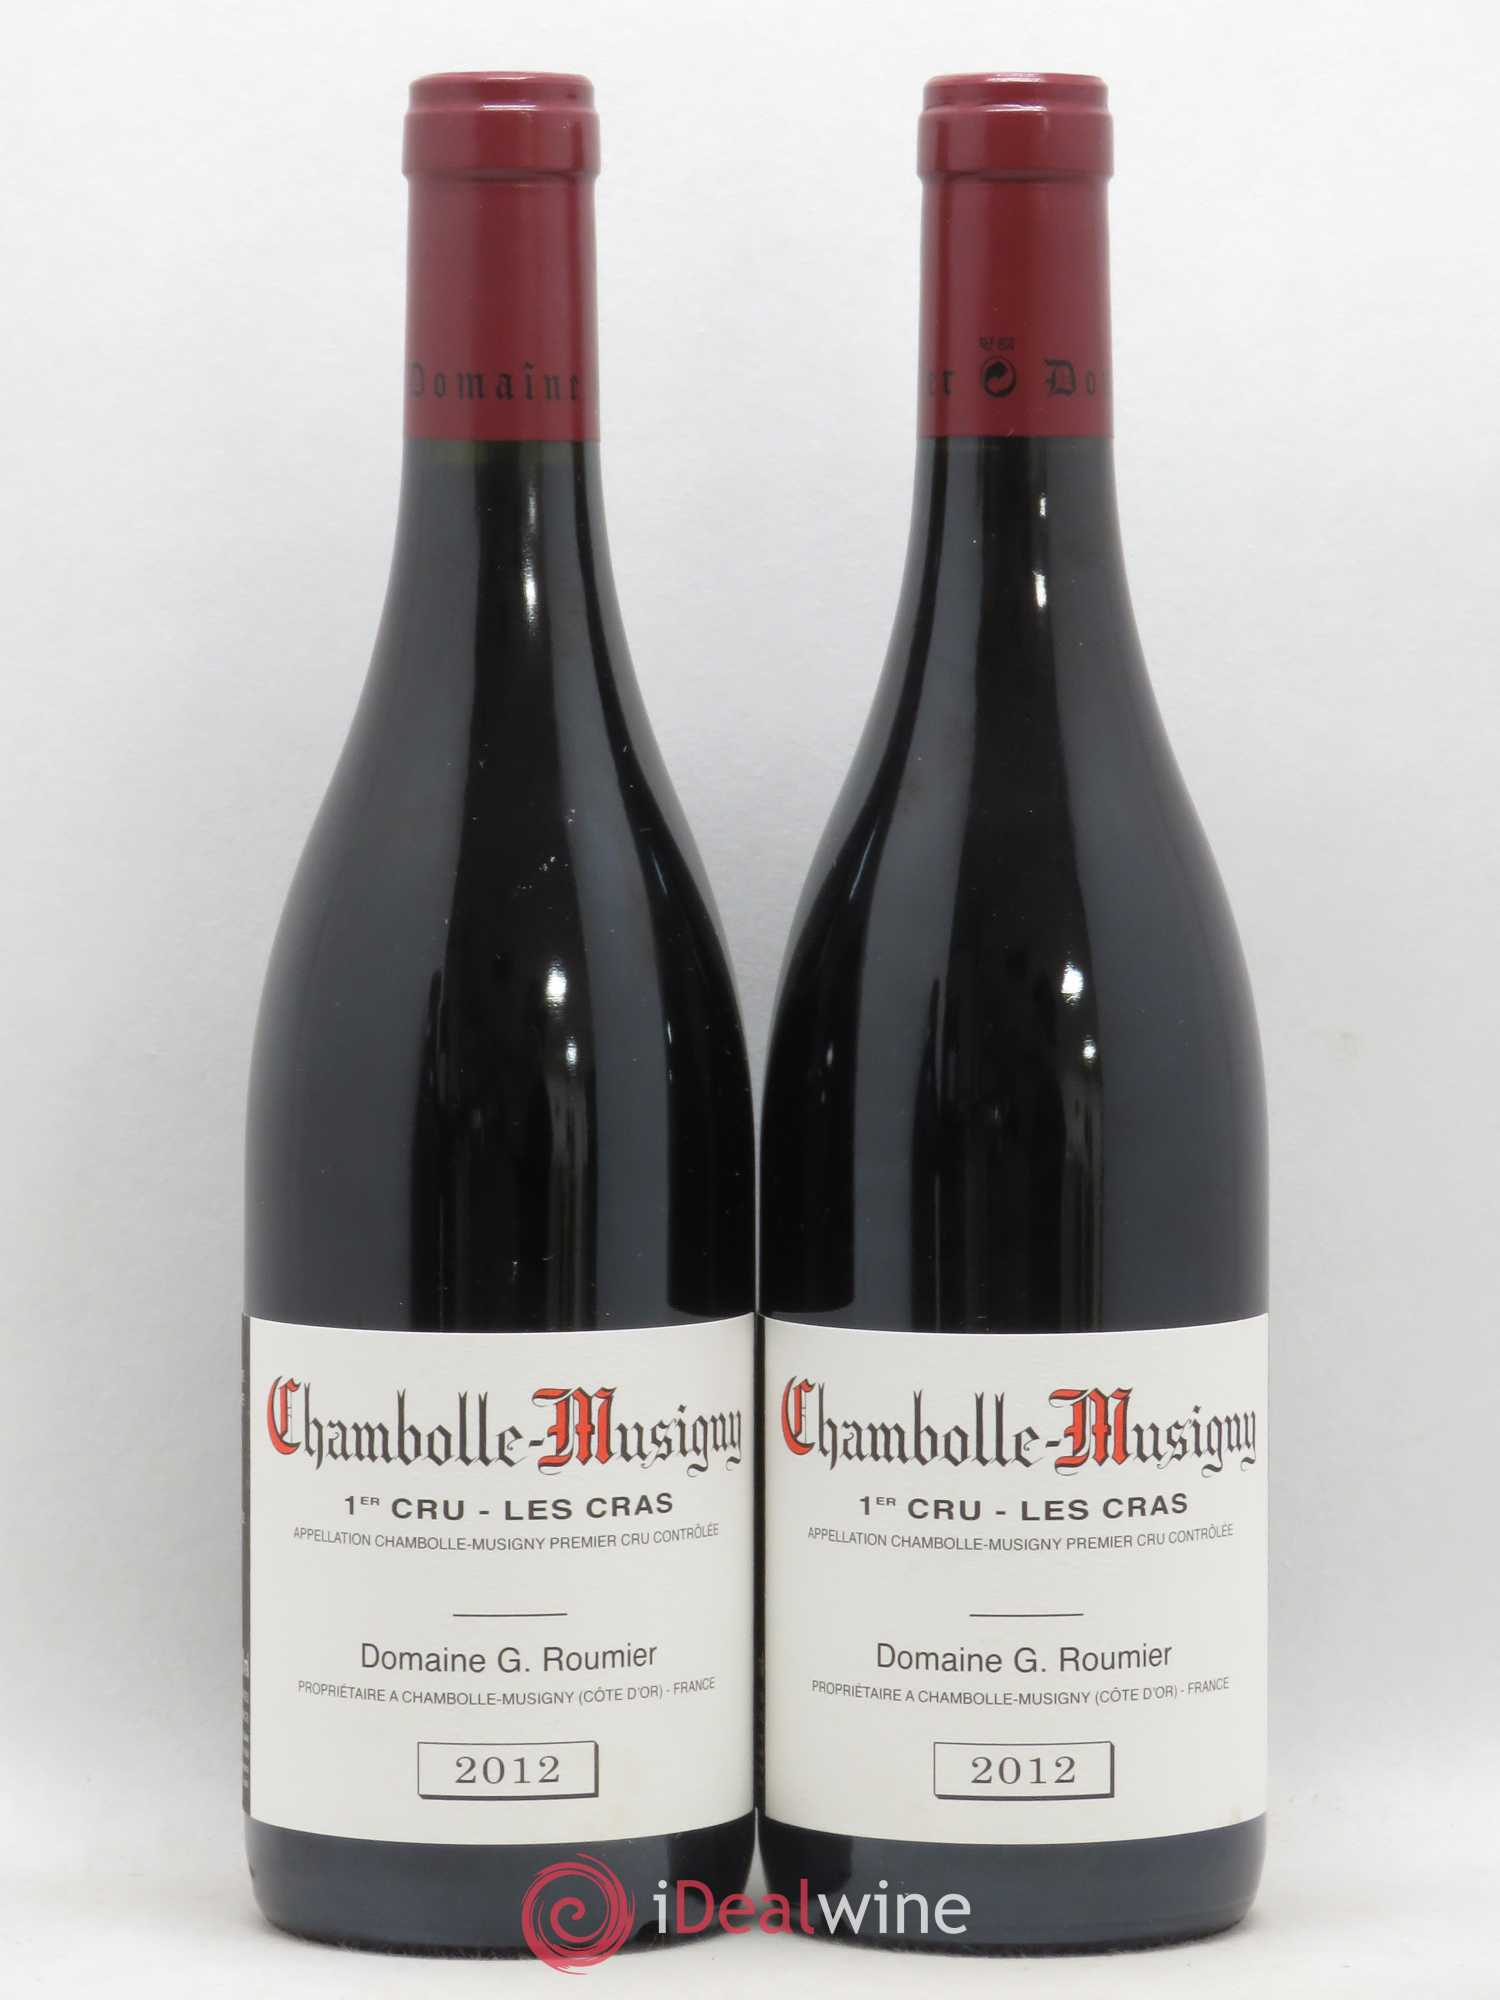 Chambolle-Musigny 1er Cru Les Cras Georges Roumier (Domaine)  2012 - Lot of 2 Bottles